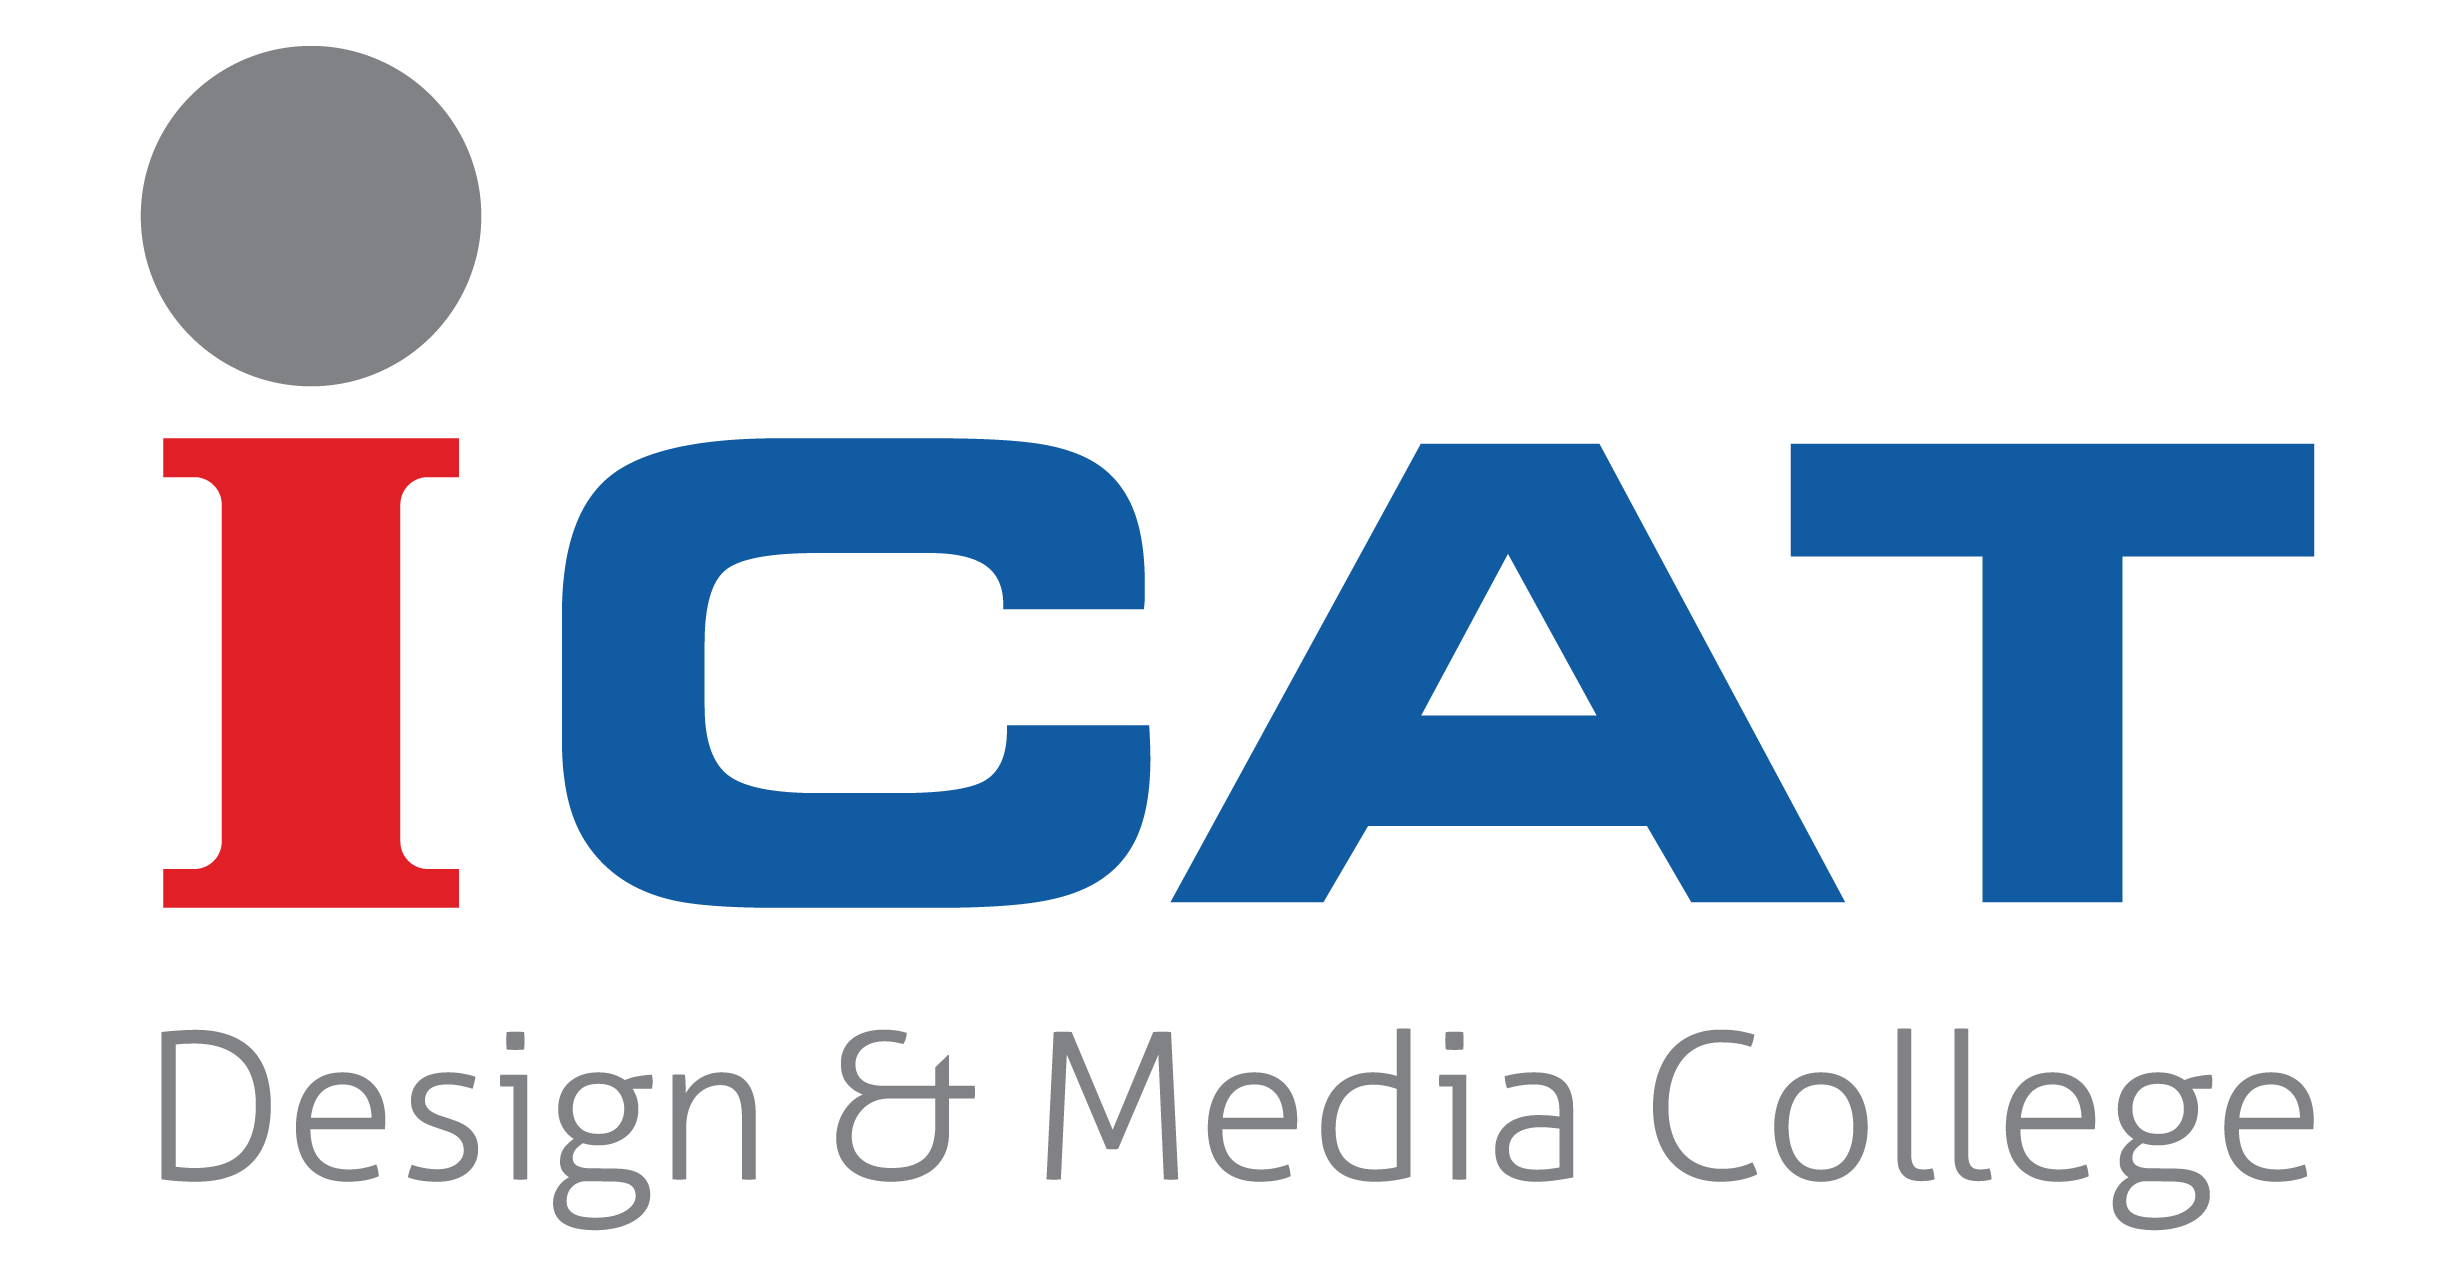 Groovy Icat Design Media College Wikipedia Complete Home Design Collection Barbaintelli Responsecom